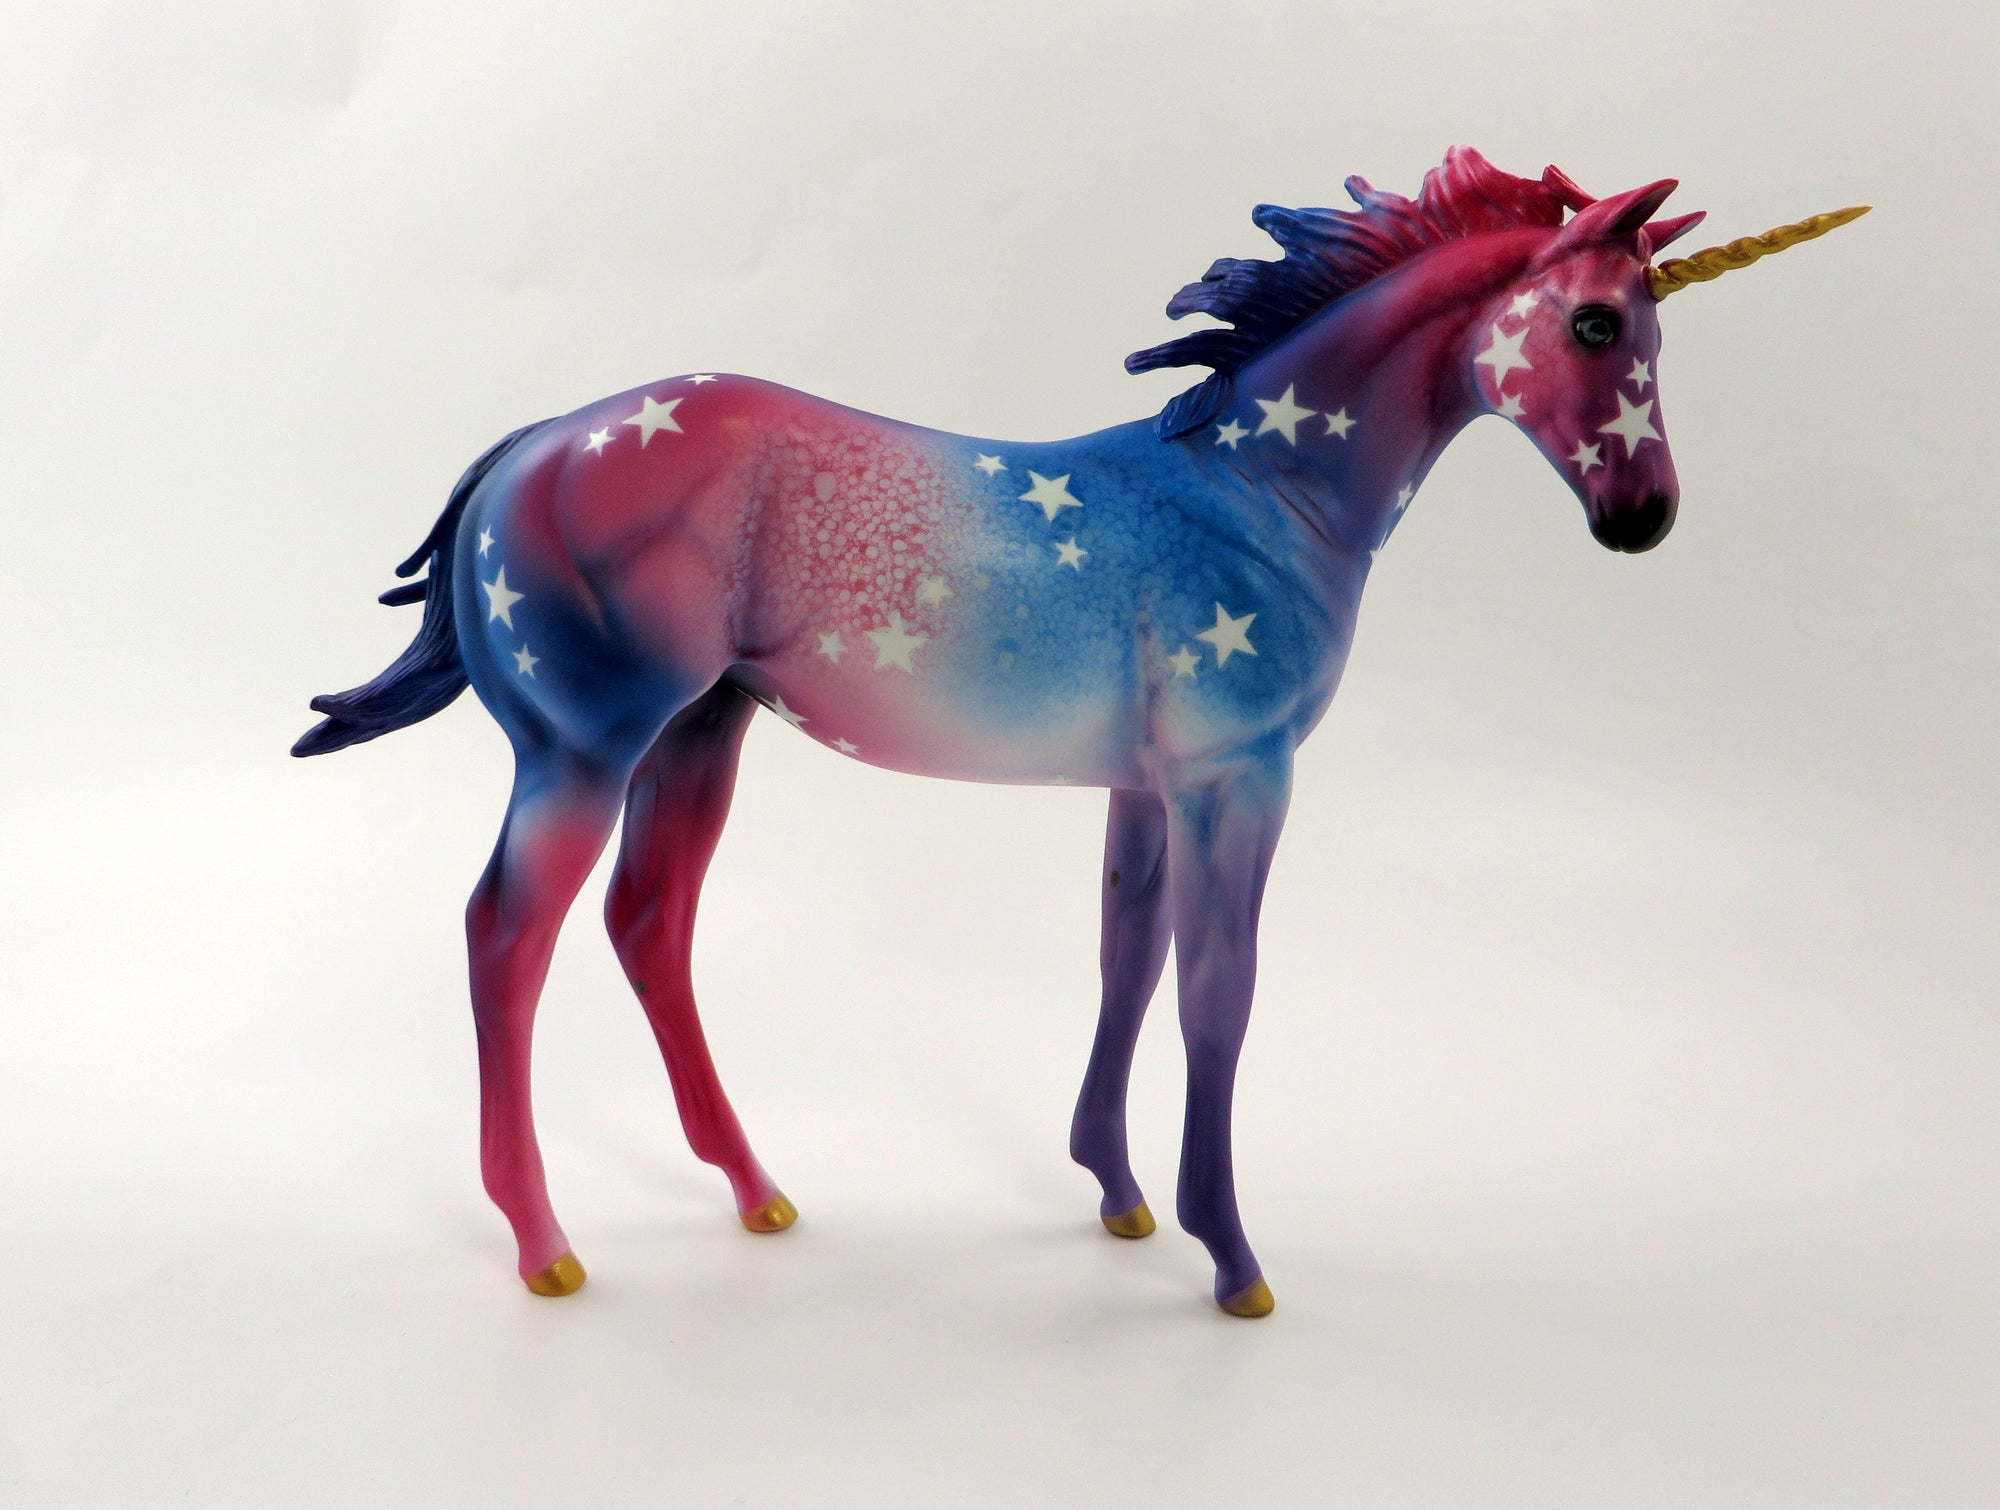 ASTRA - LE-30 - PRE-ORDER UNICORN DECORATOR BY DAWN QUICK 5/10/19